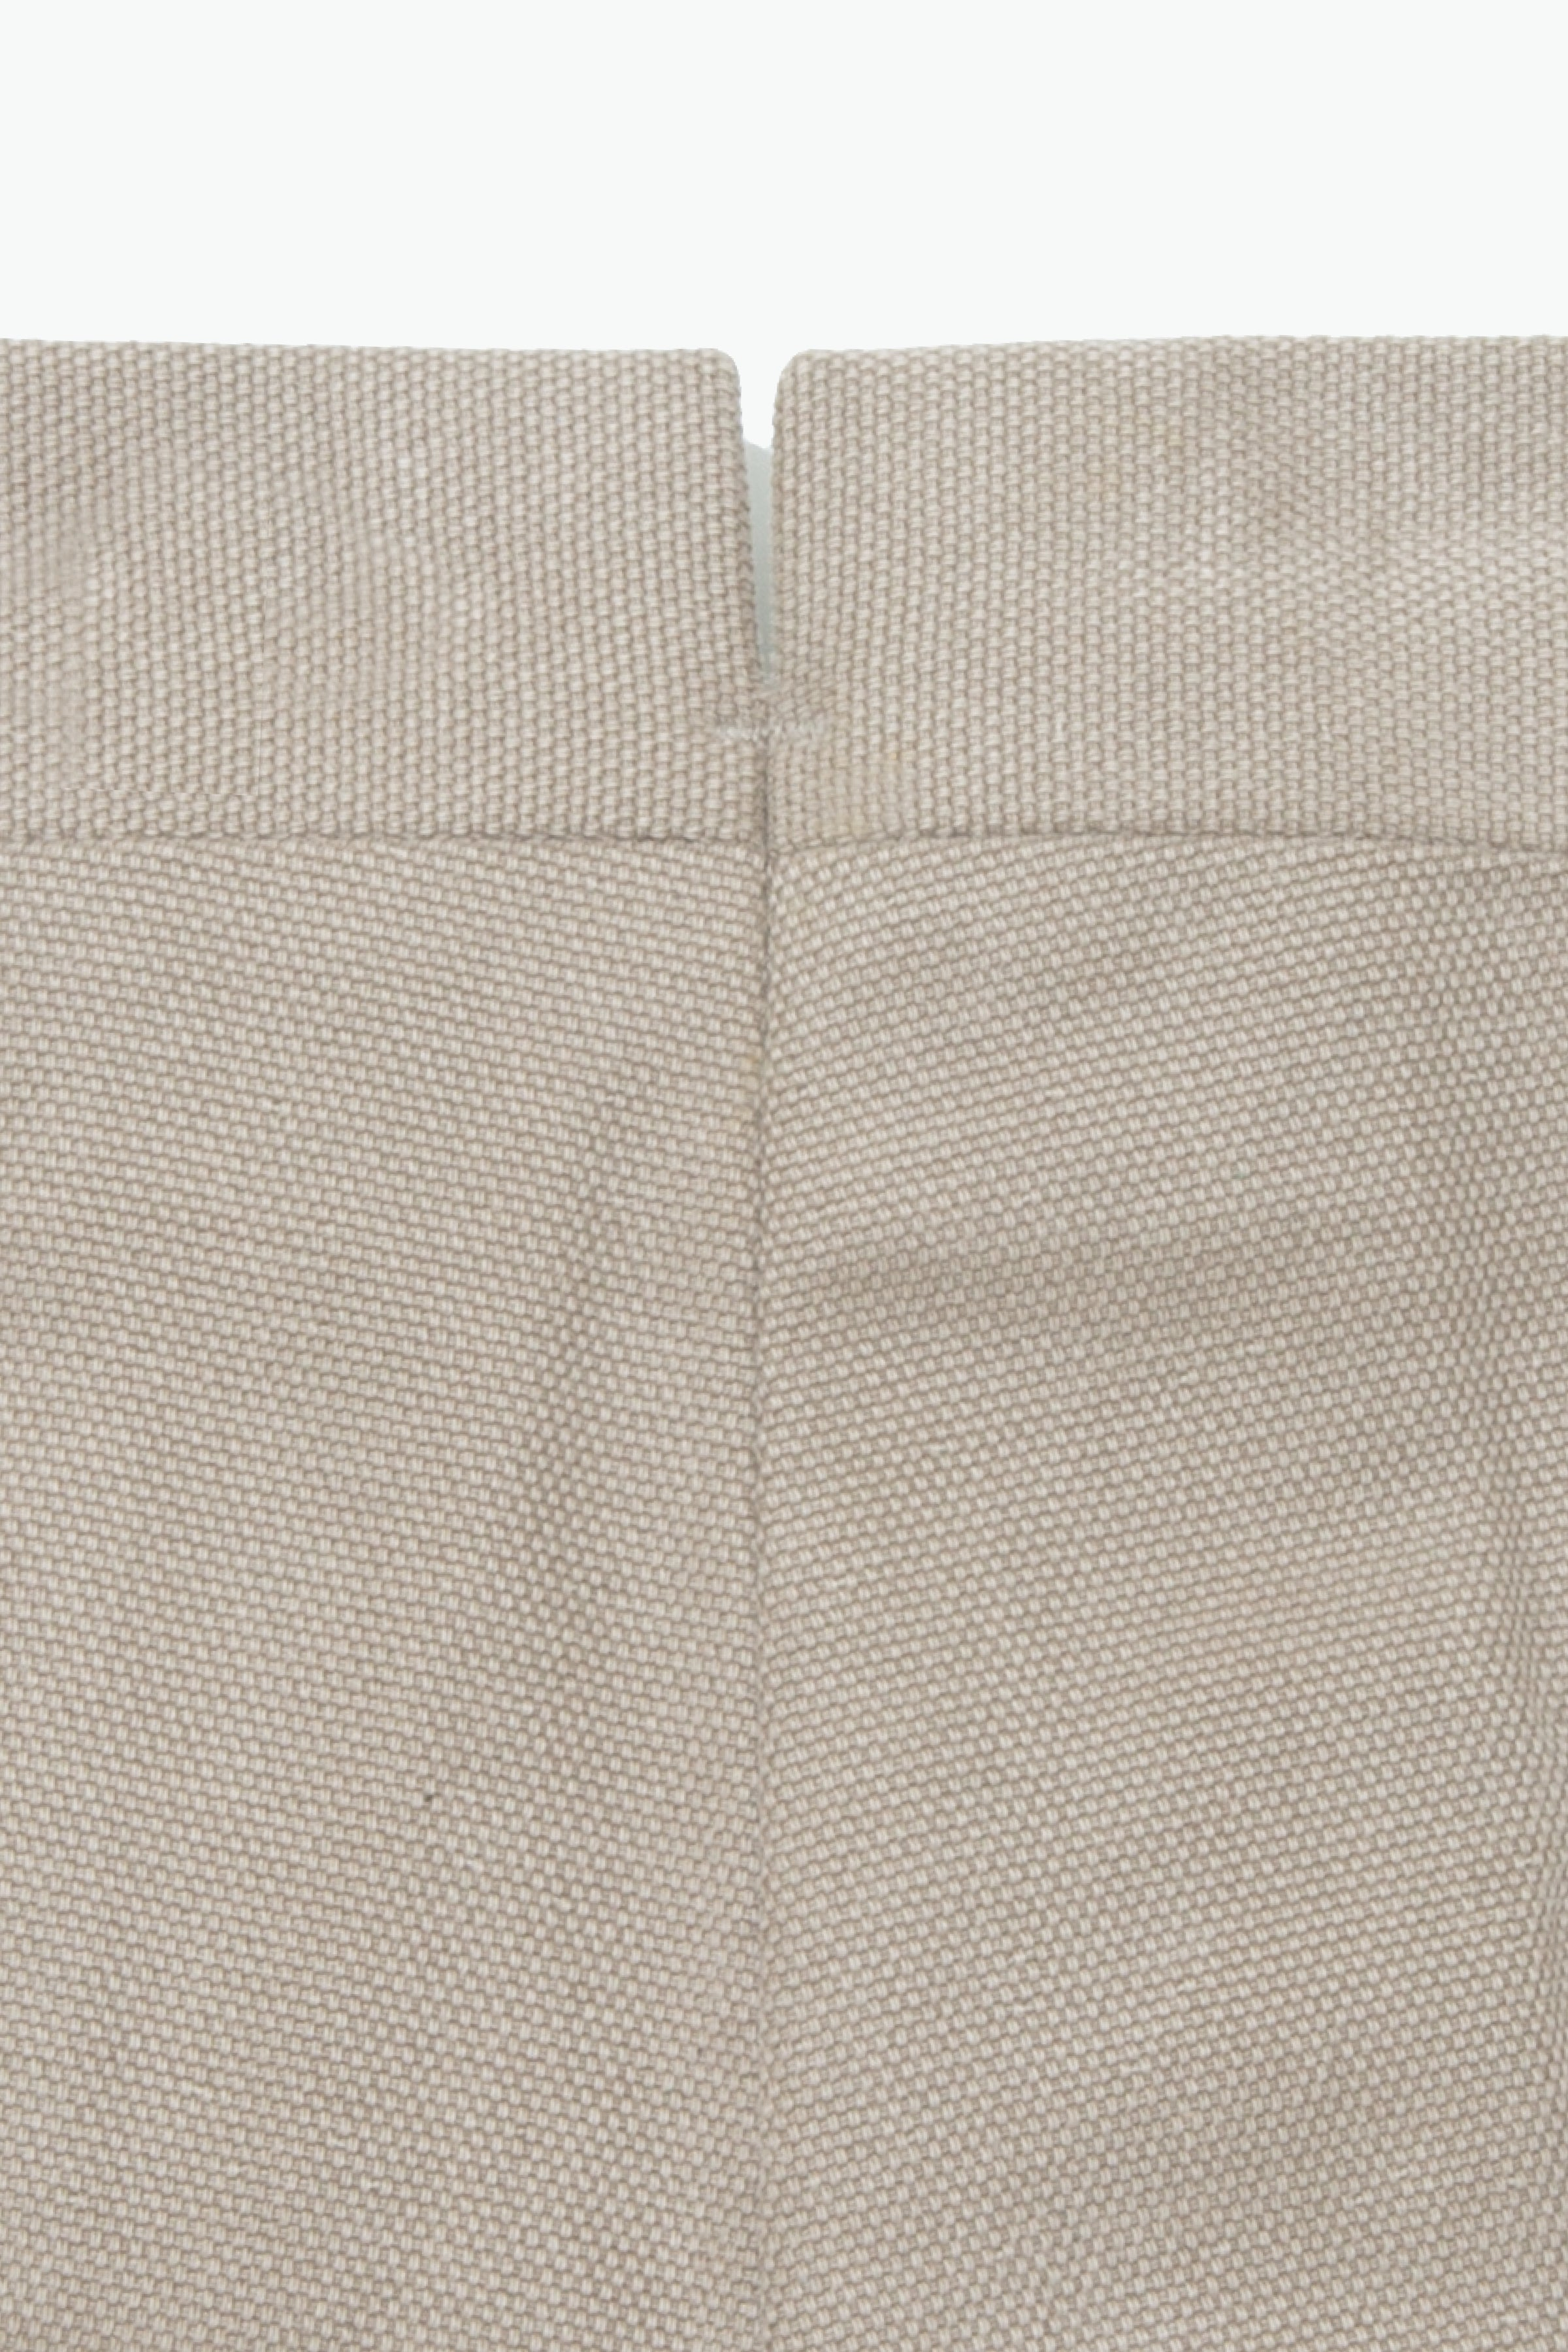 MTO Trousers - Single Pleat (Basketweave Taupe)